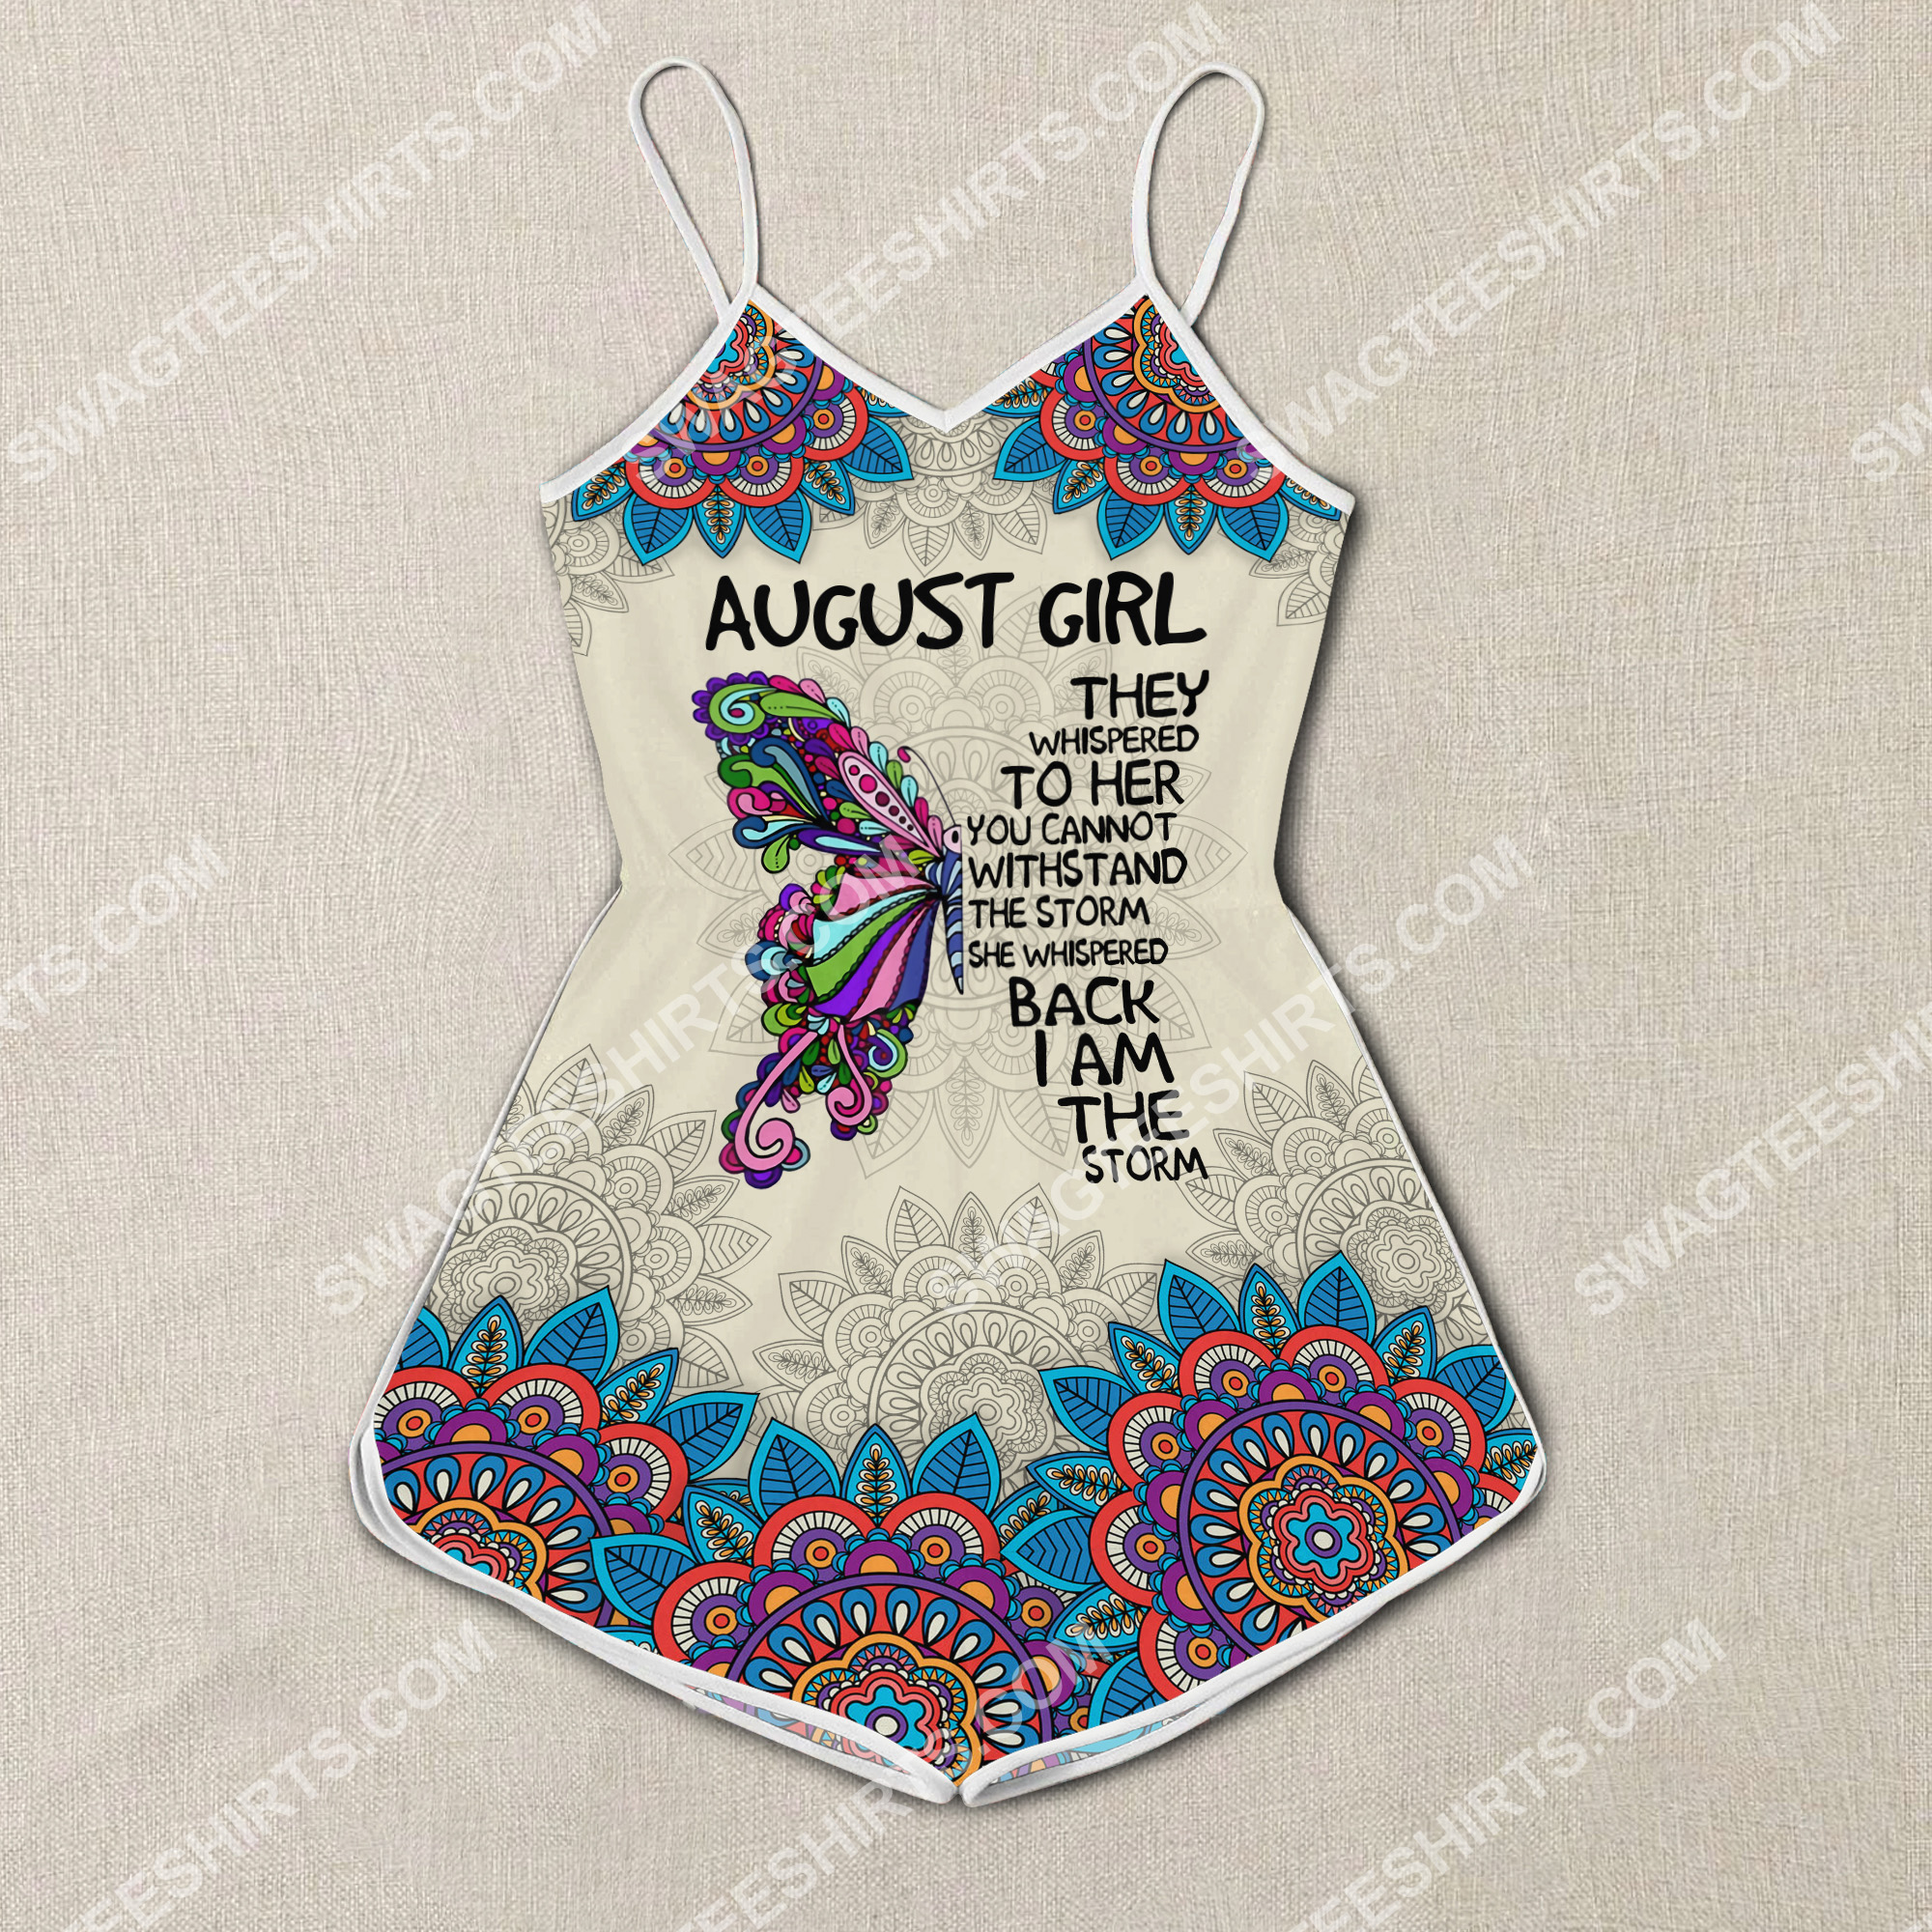 august girl they whispered to her you cannot withstand the storm rompers 3(1)